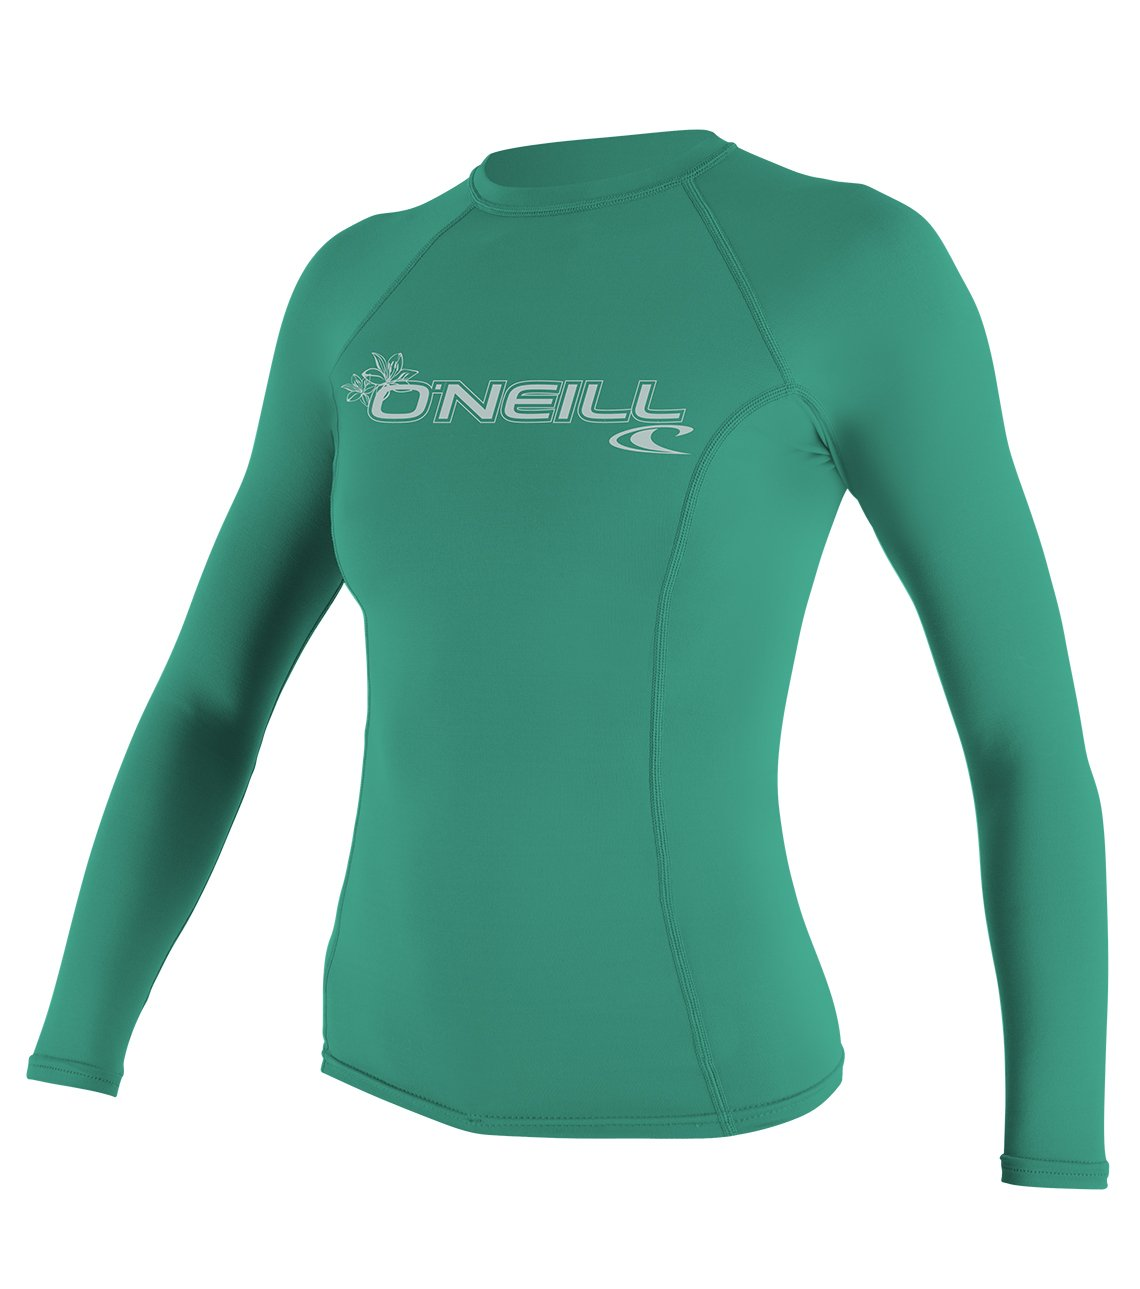 O'Neill Wetsuits UV Sun Protection Womens Basic Skins Long Sleeve Crew Sun Shirt Rash Guard, Seaglass, Large by O'Neill Wetsuits